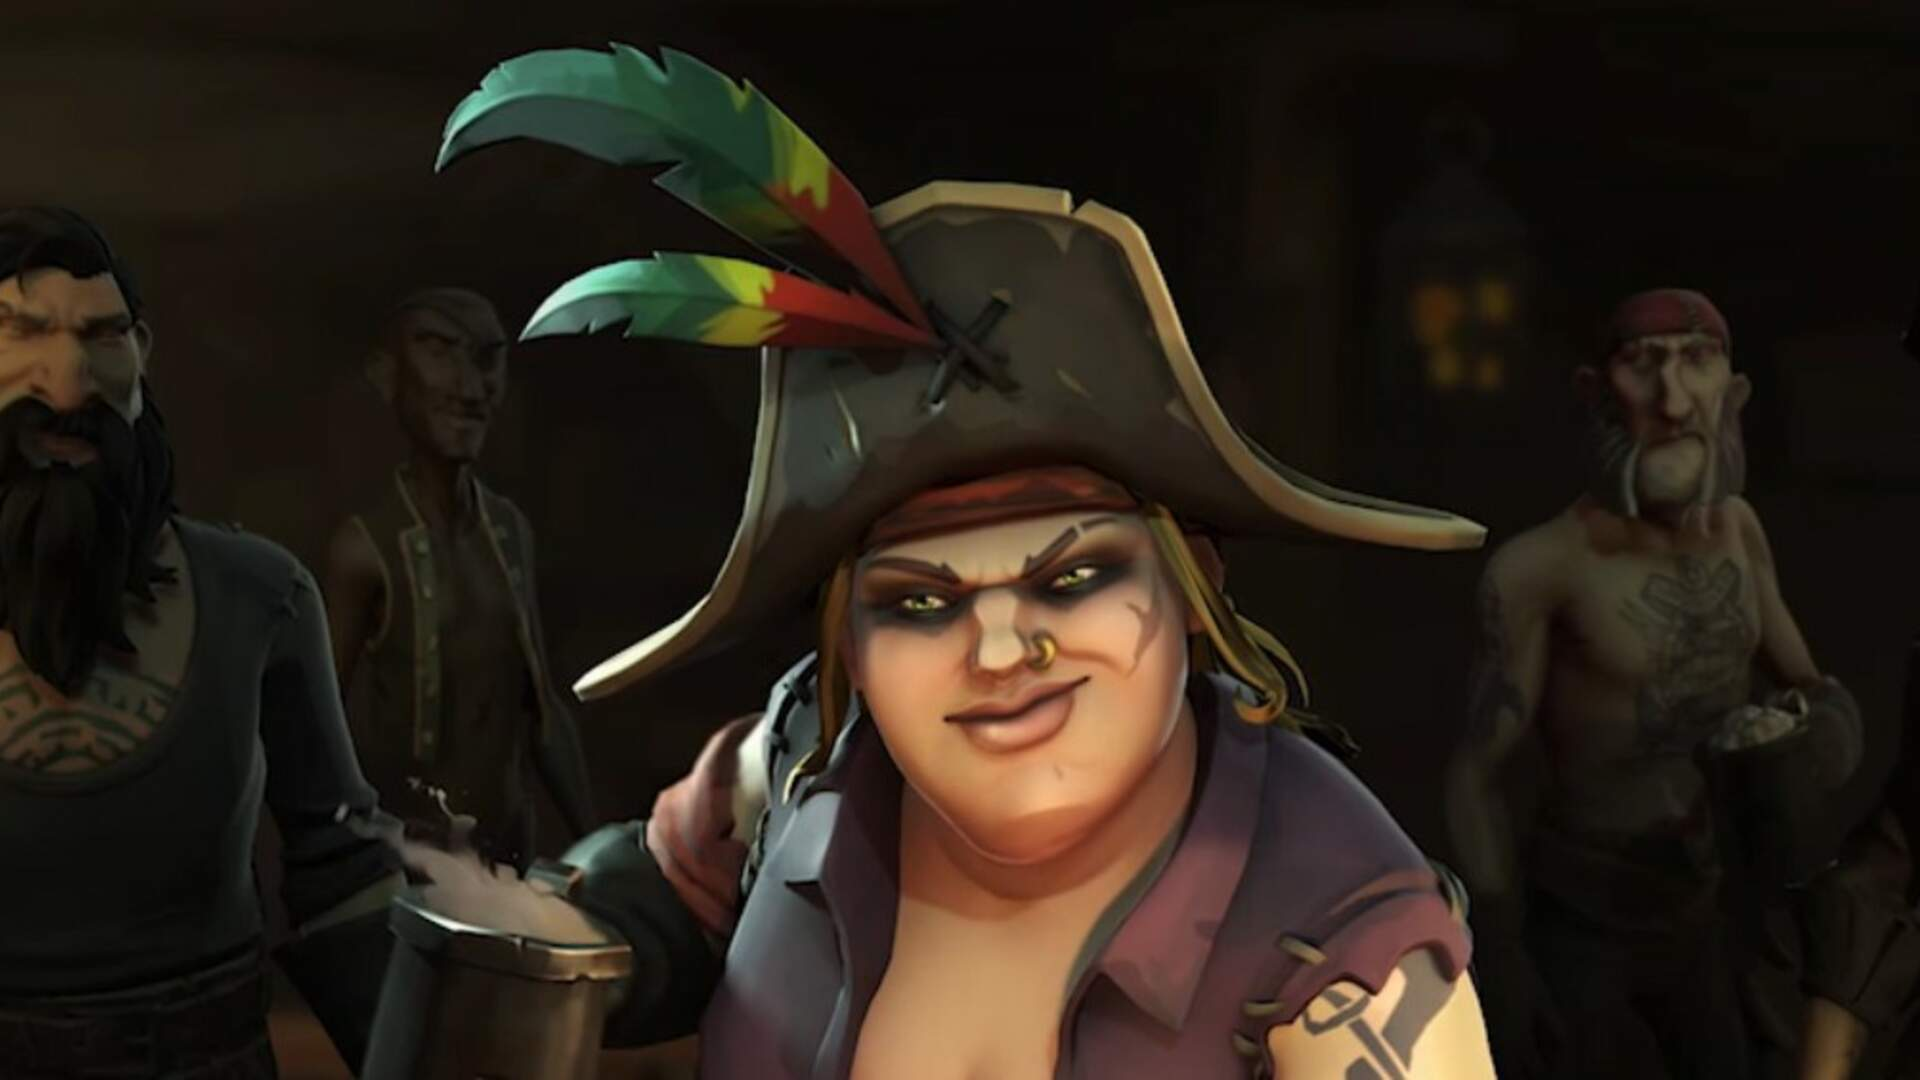 You Can Download New Nvidia GPU Drivers Optimized for Sea of Thieves